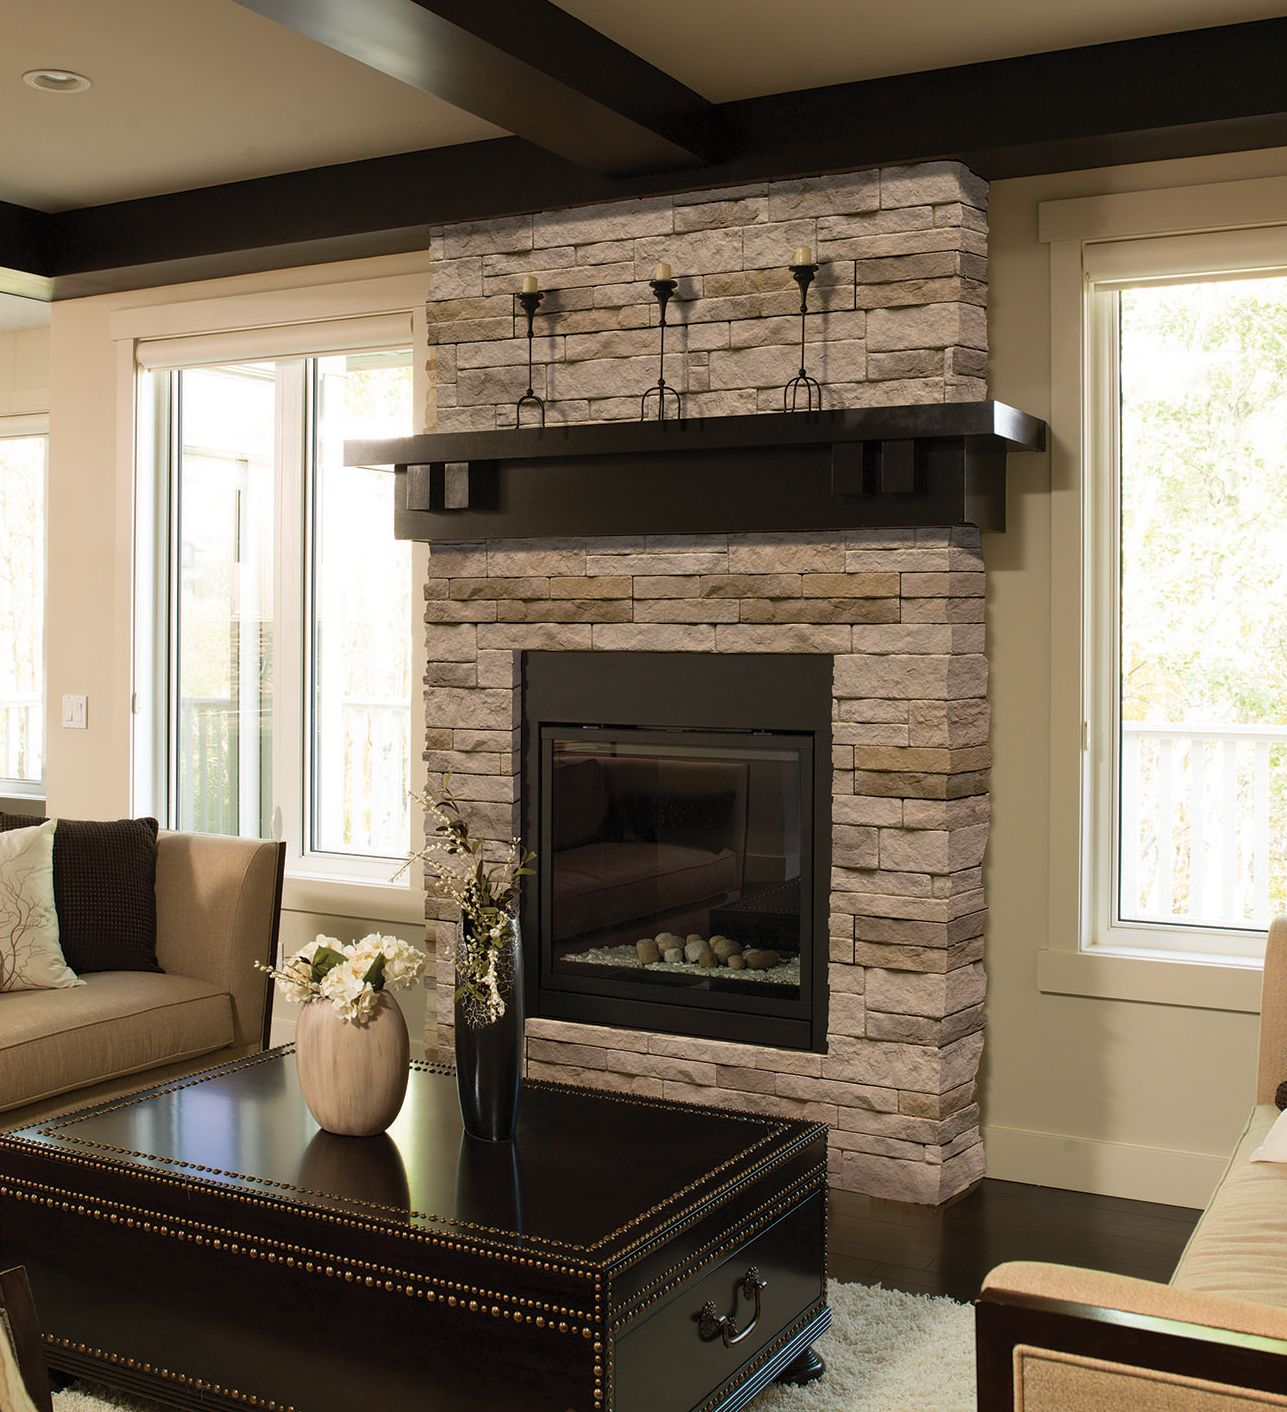 Interior Stone Wall Fireplace Prefab Fieldstone Fireplaces: Pin By Menards On Interesting Interiors